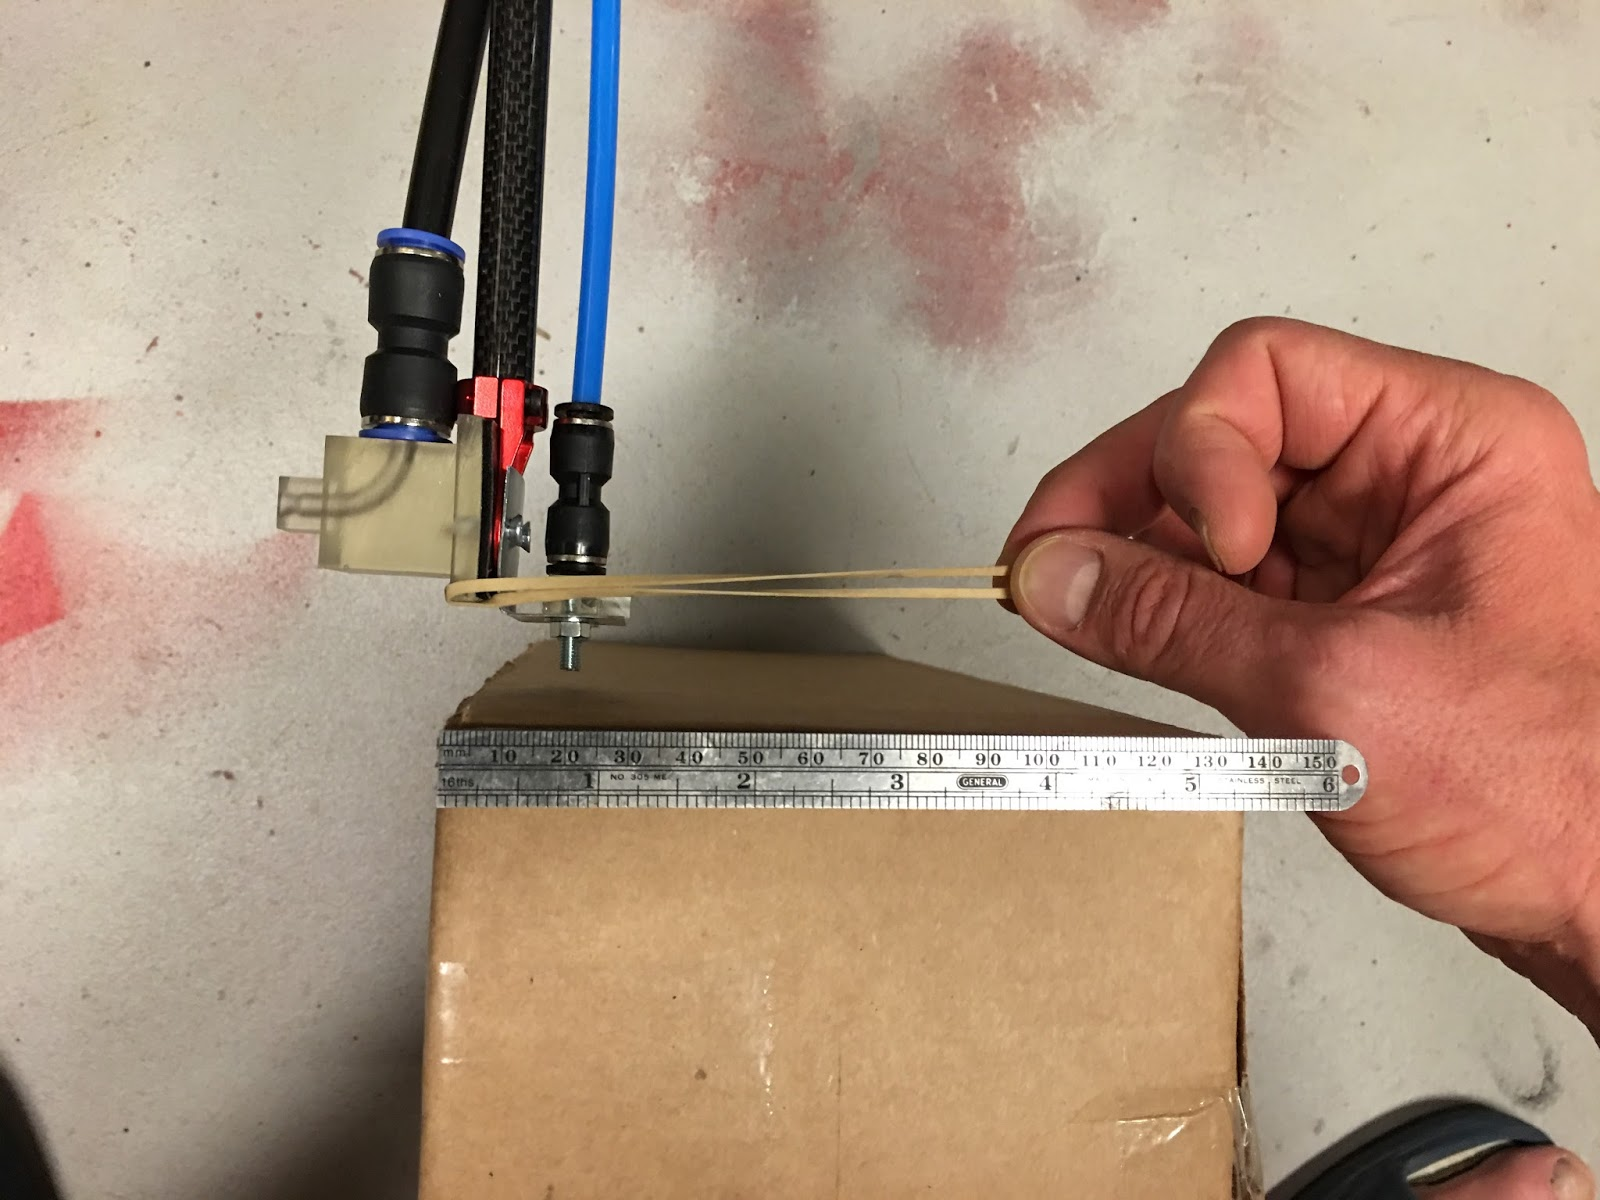 The HAPP project utilizes only the most sophisticated technologies: Cardboard box, millimeter scale, and an old rubber band. Nozzle v6 points left and v3 points right.